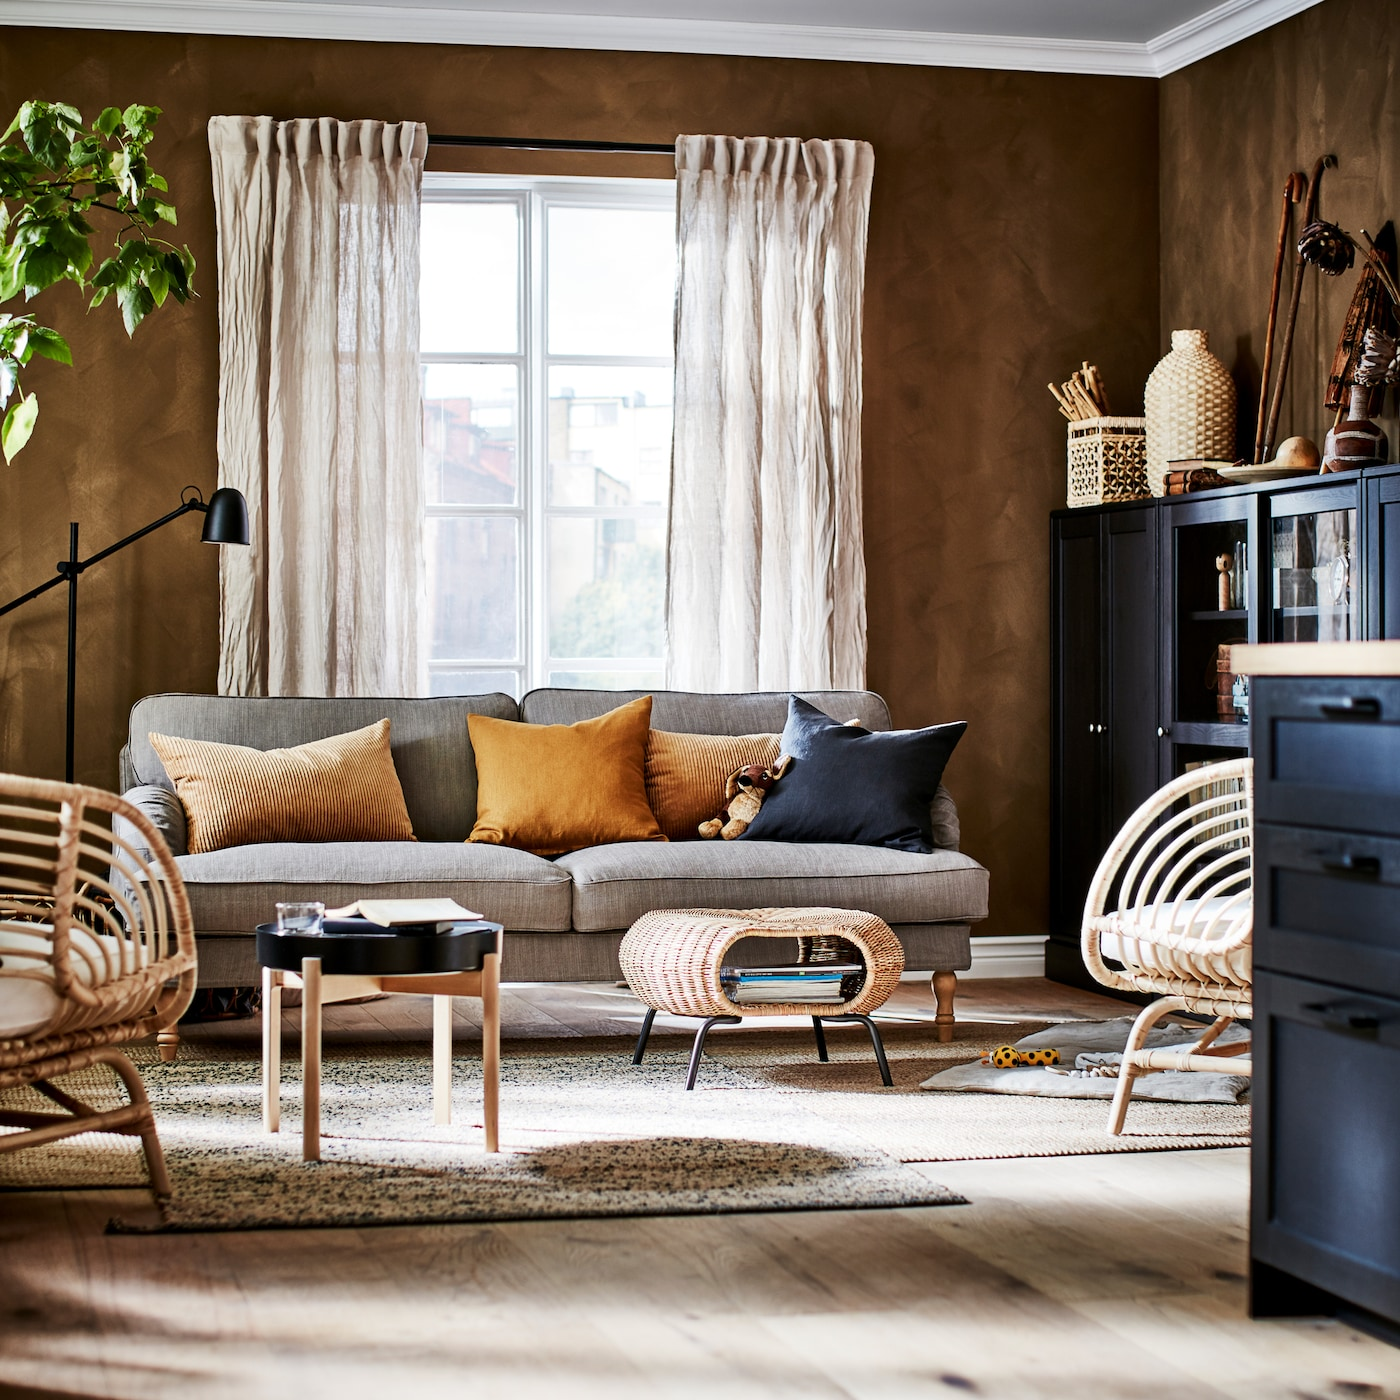 Link to 'Wrapped up in sustainability' - image of a living room with a grey-beige sofa and natural accents.